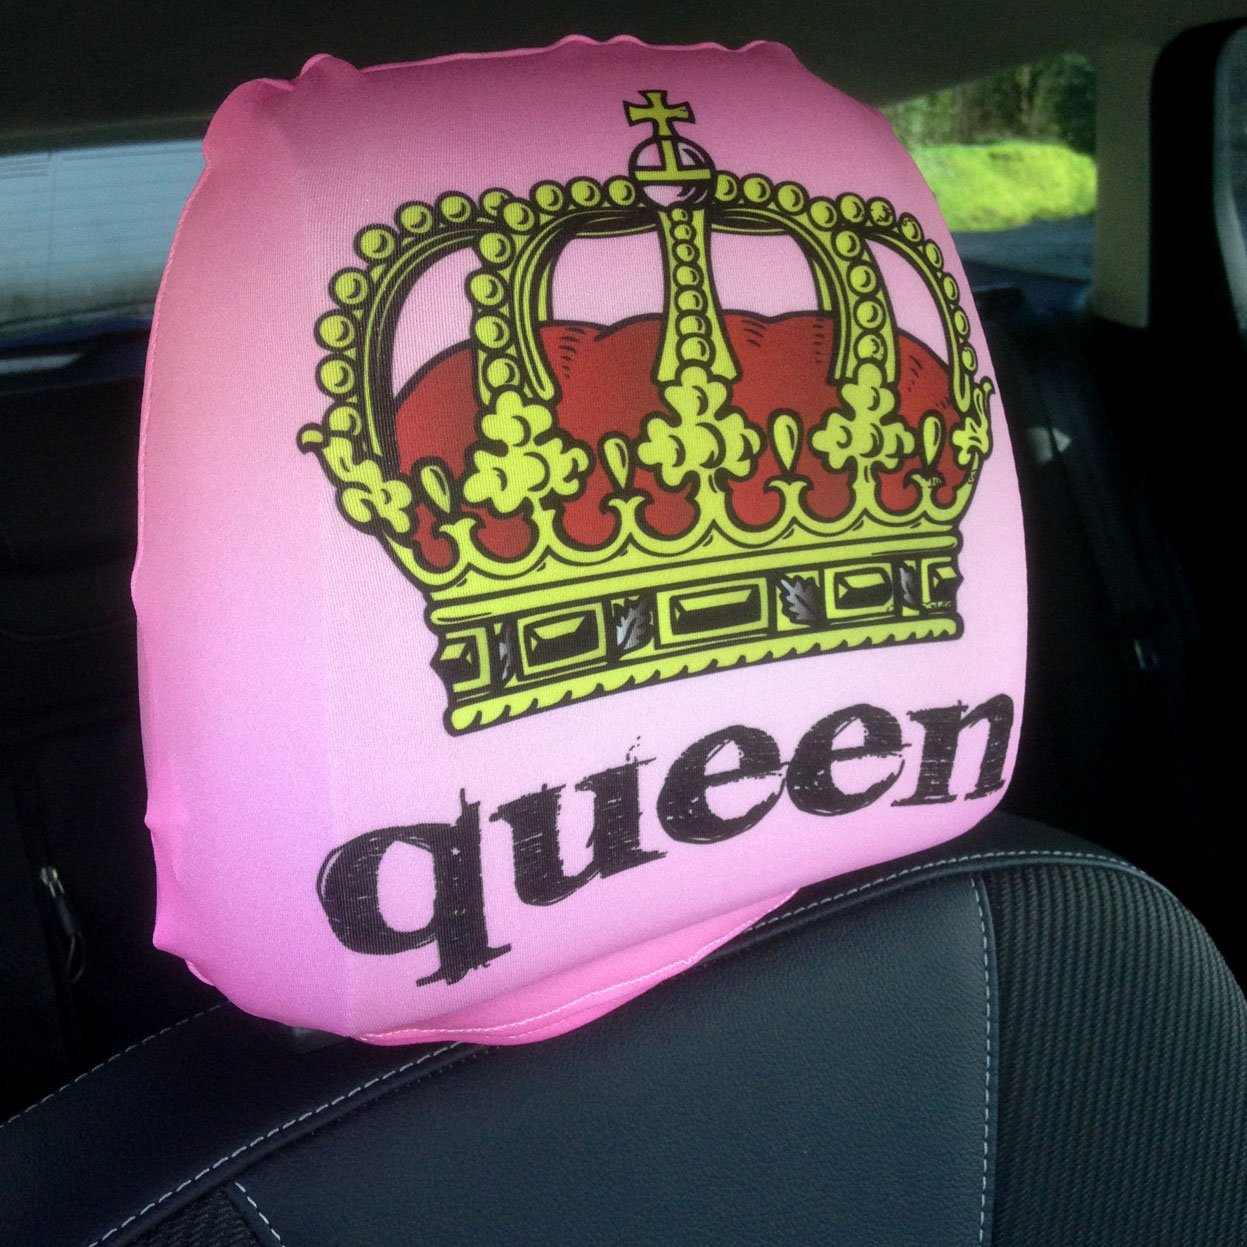 CAR SEAT HEAD REST COVERS 2 PACK KING QUEEN CROWN DESIGN MADE IN YORKSHIRE Amazoncouk Car Motorbike